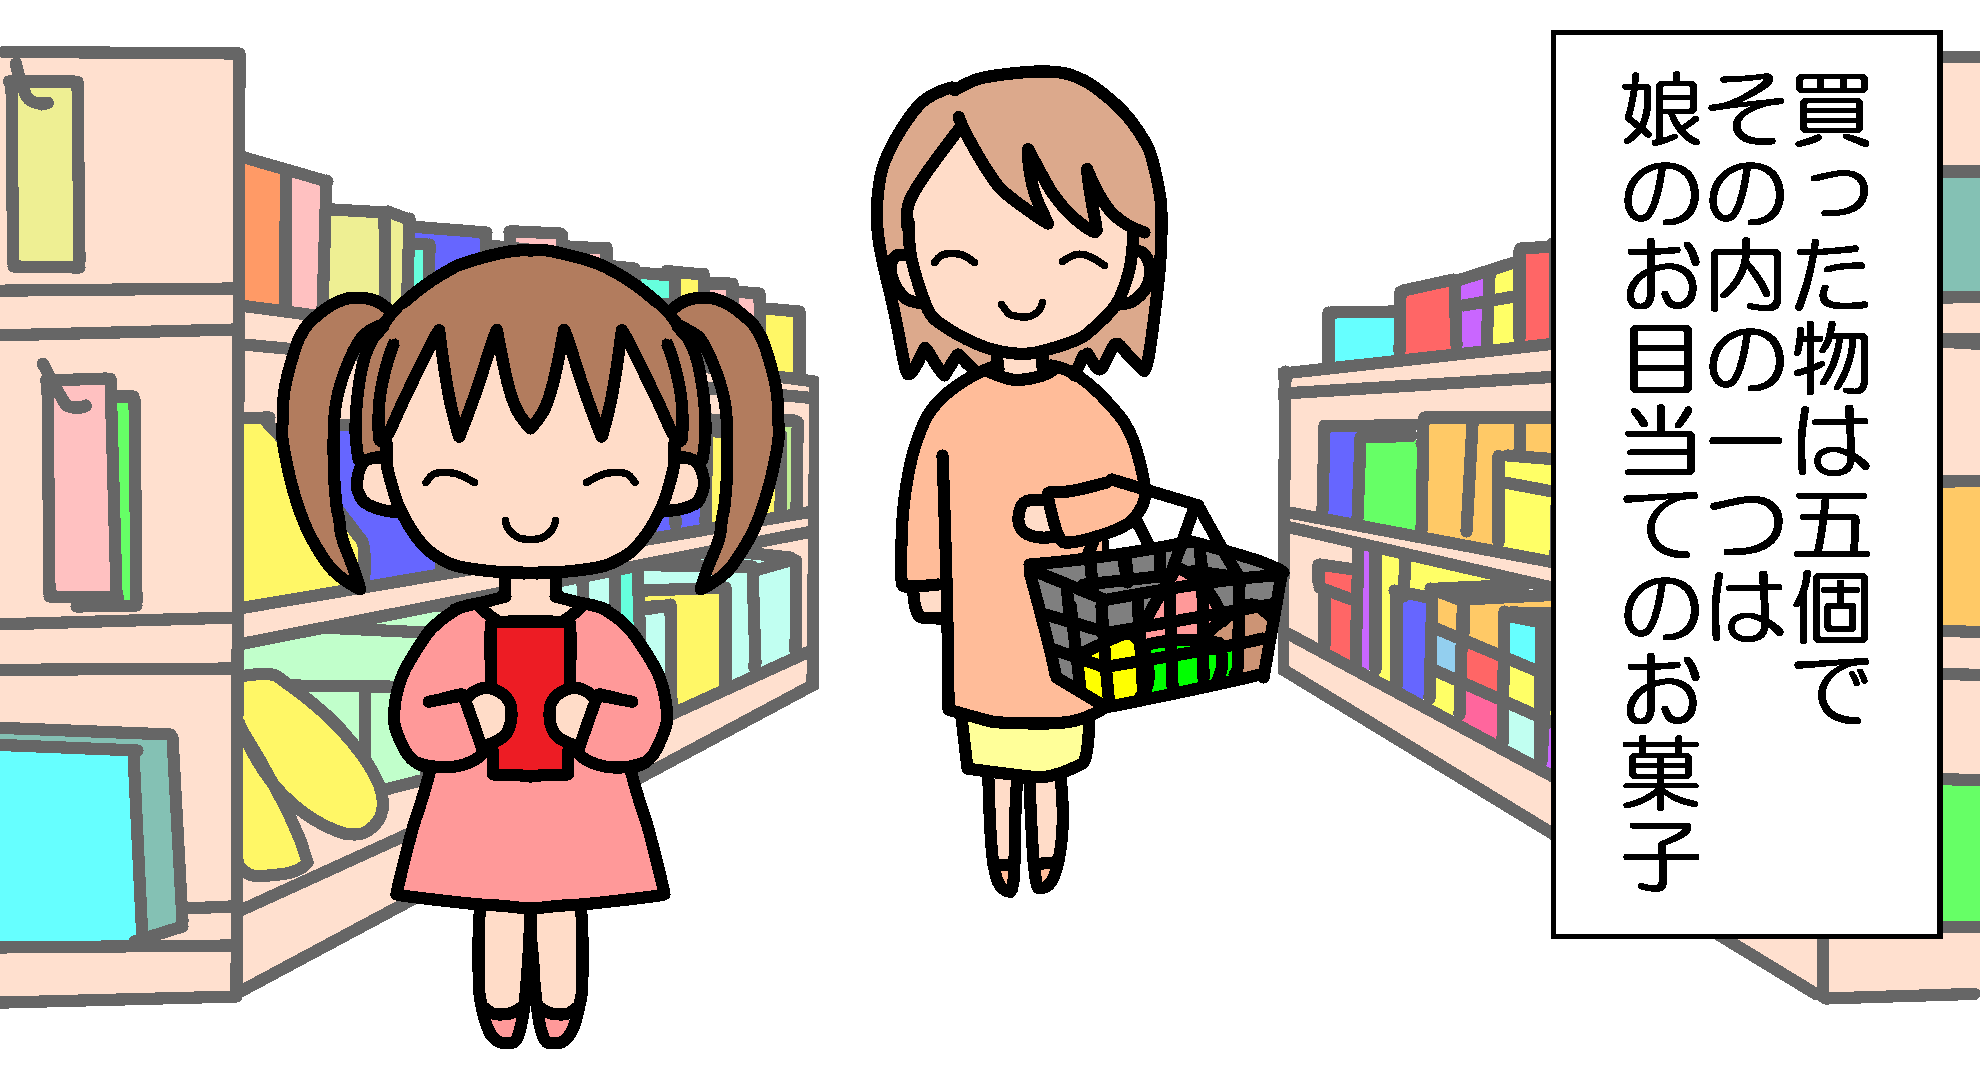 yotubeのイラスト_a0040621_14035555.png